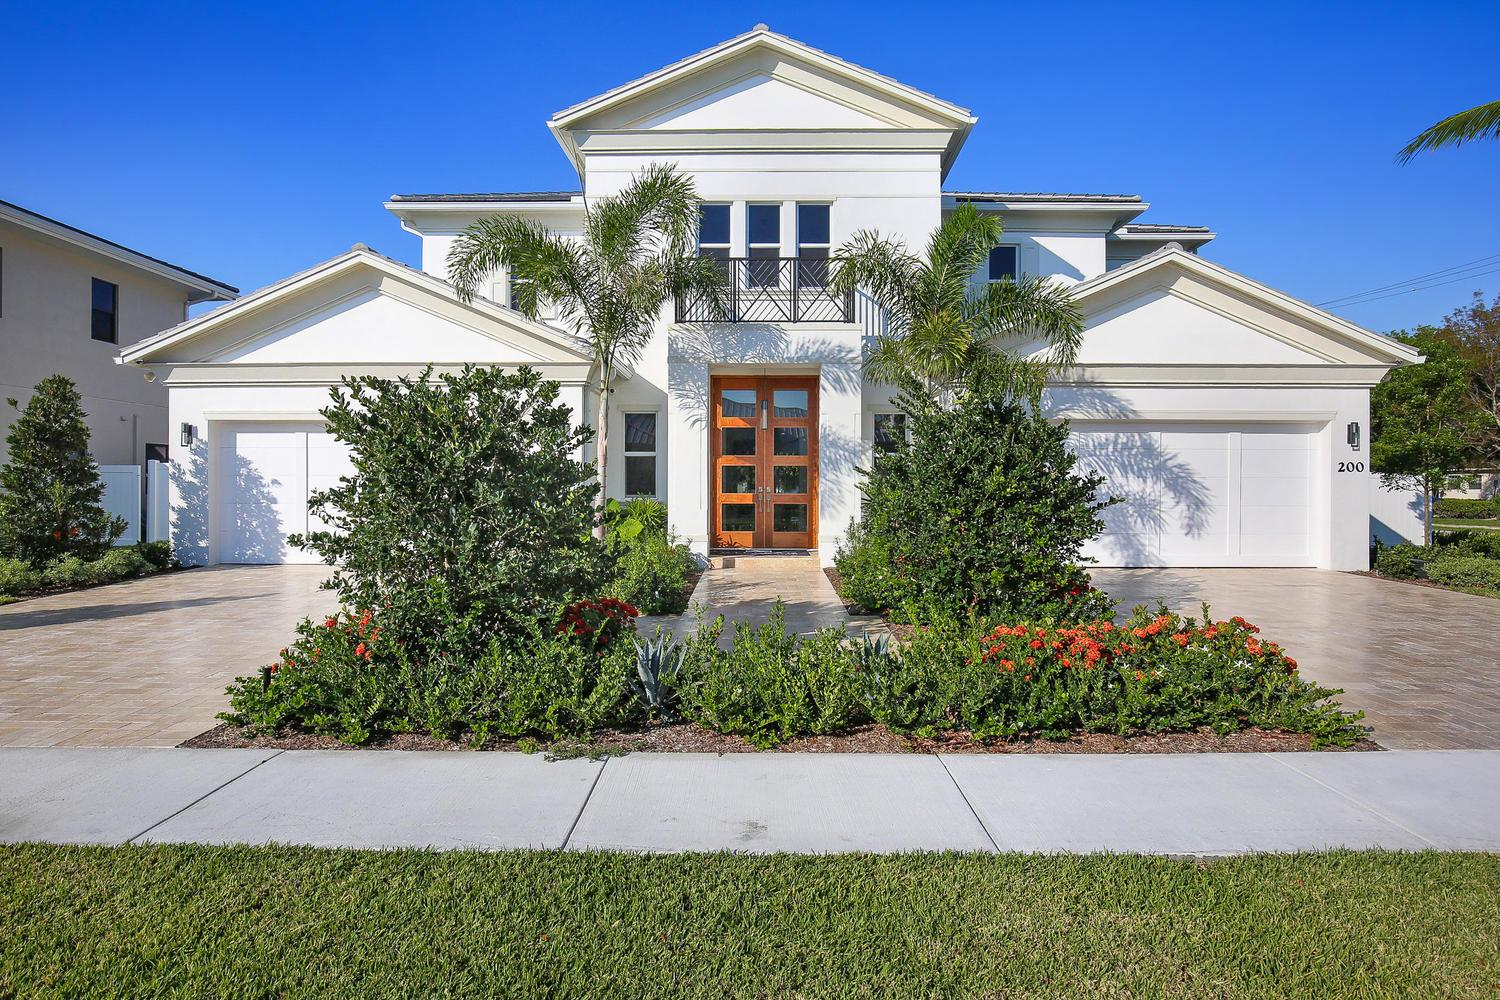 Single Family for Sale at Boca Collection - Villa Valle Boca Raton, Florida 33427 United States